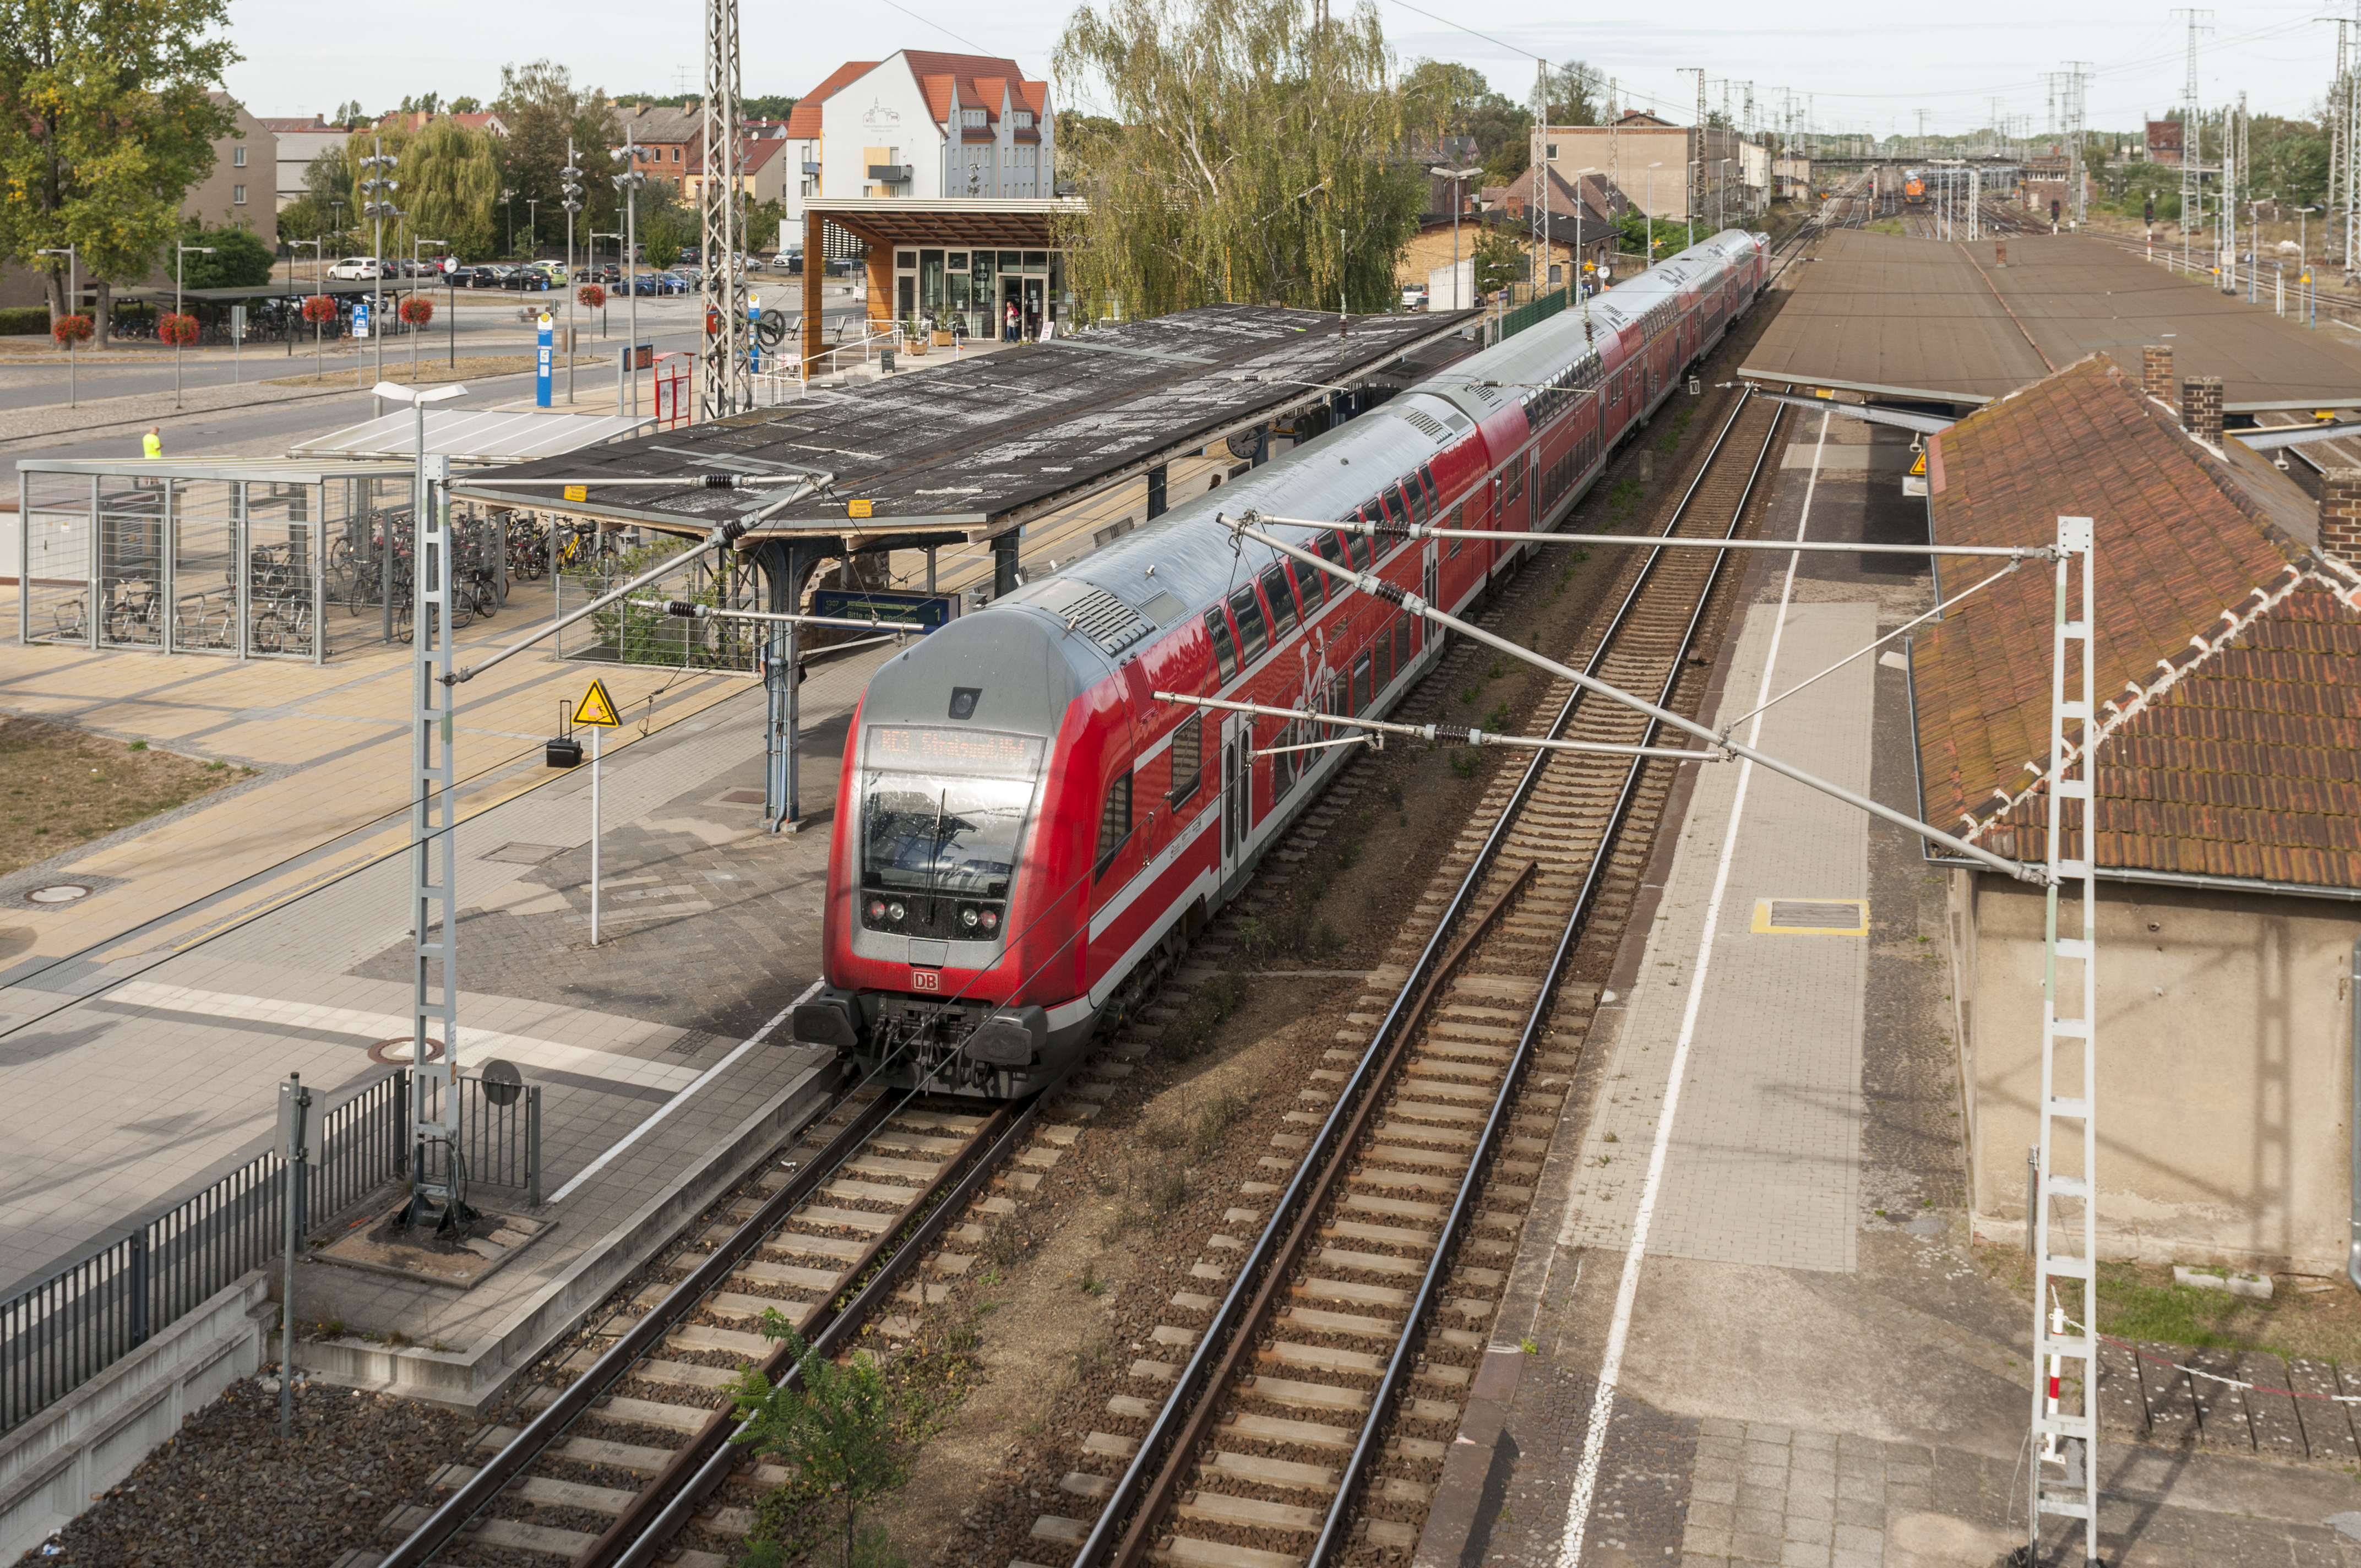 https://upload.wikimedia.org/wikipedia/commons/6/62/16-09-29-Bahnhof_Falkenberg-Elster-RR2_6607.jpg